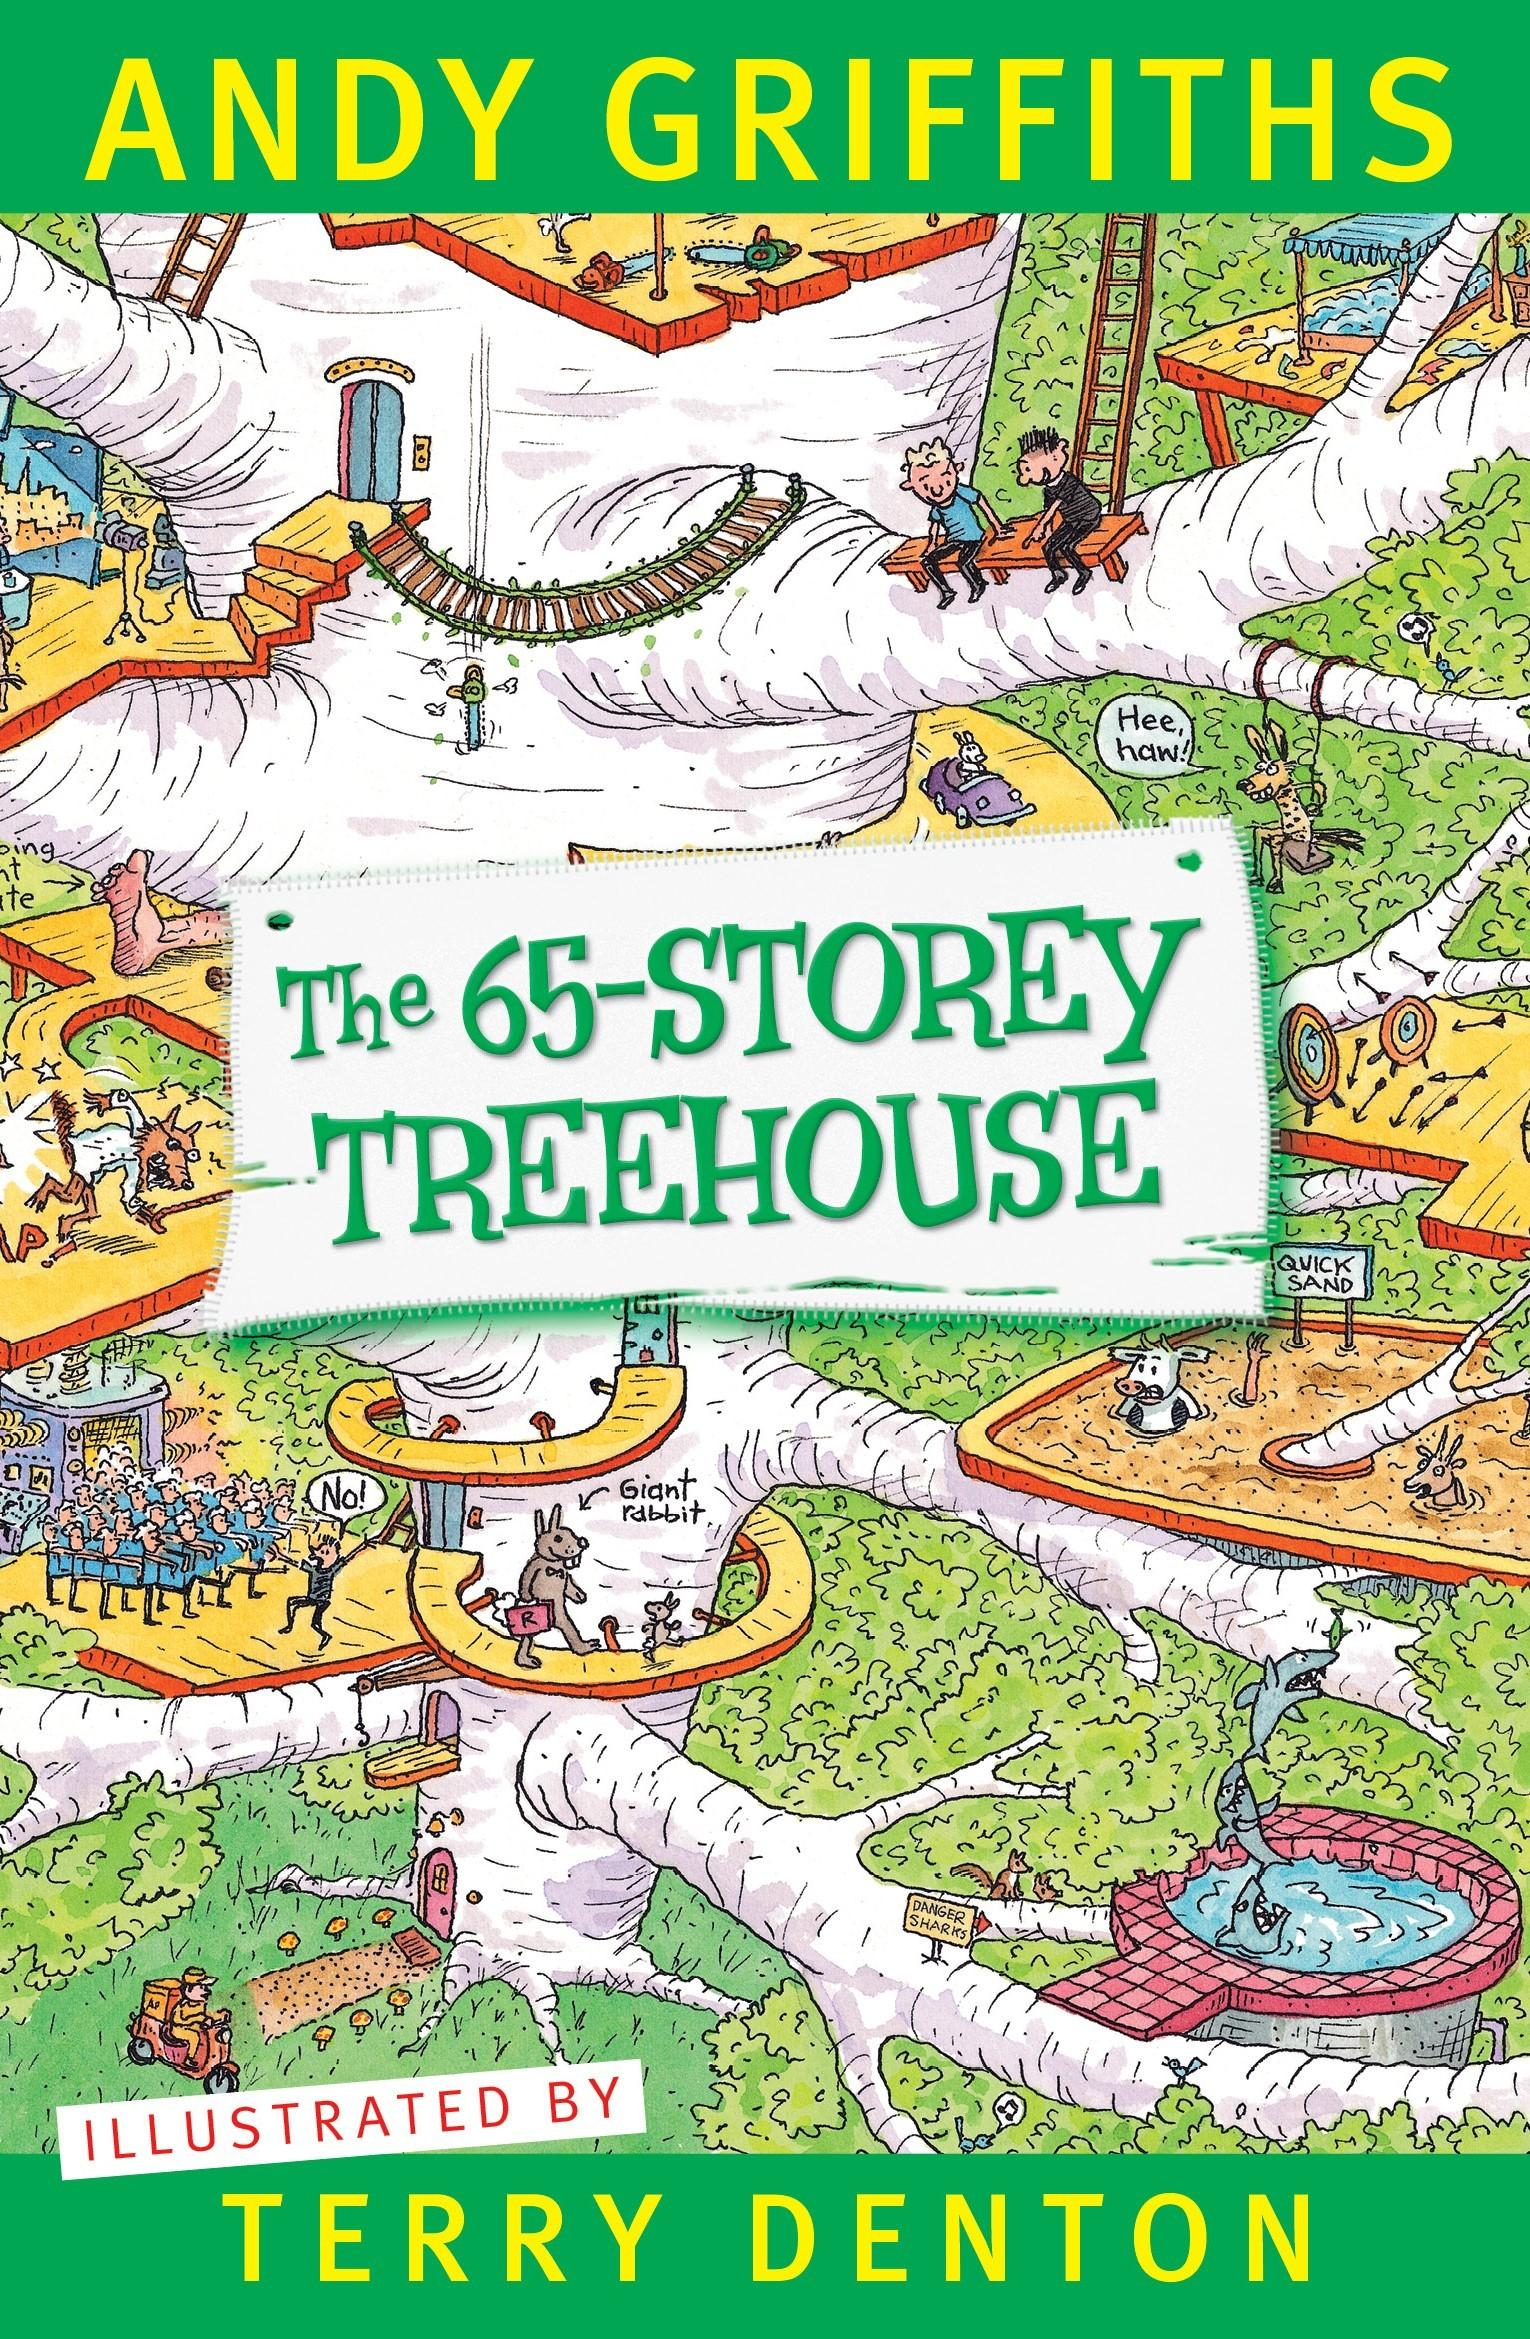 The65-StoreyTreehouse